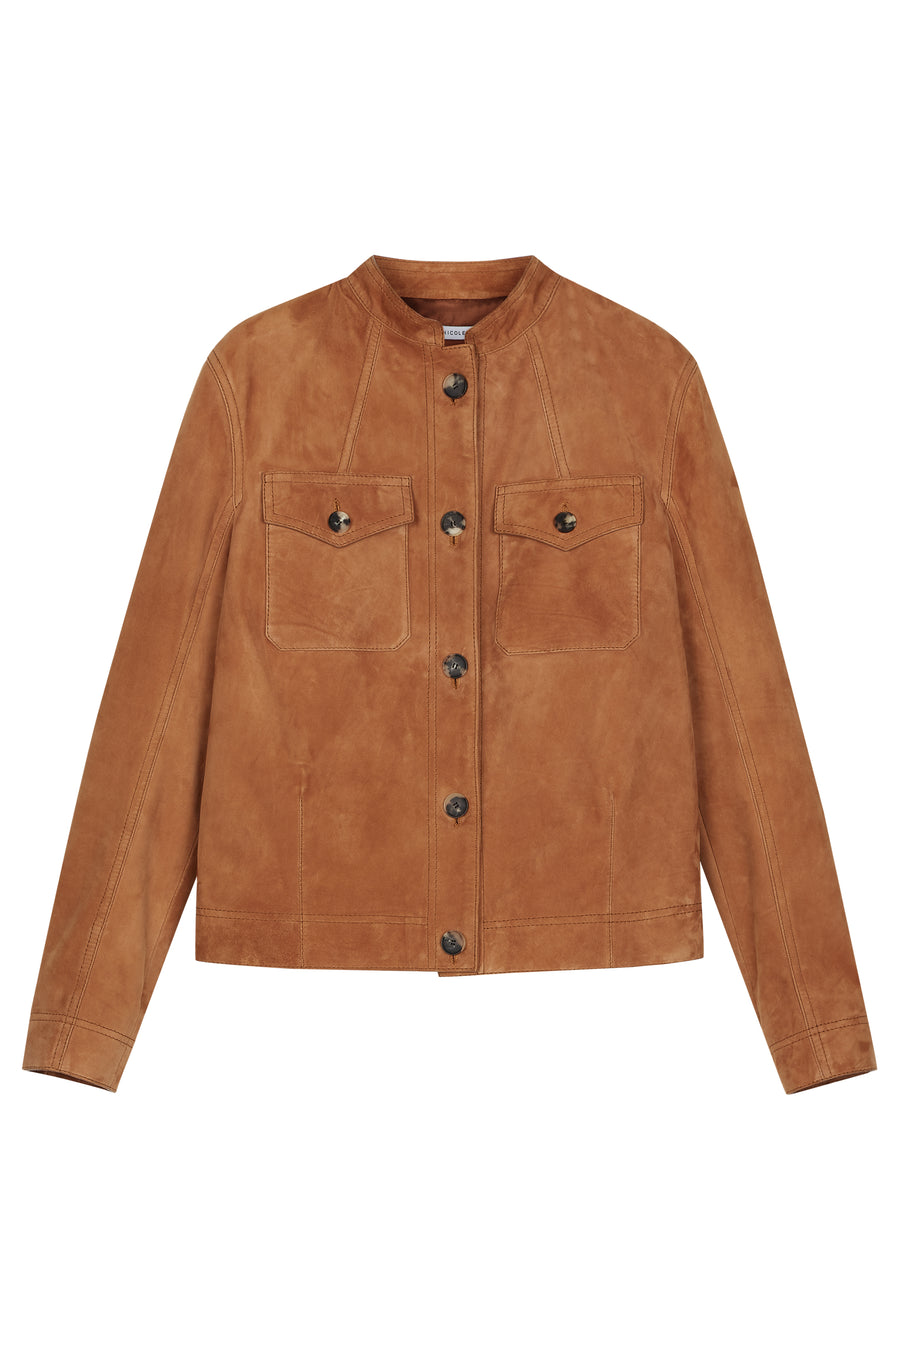 Tan Amber Suede Shirt Jacket